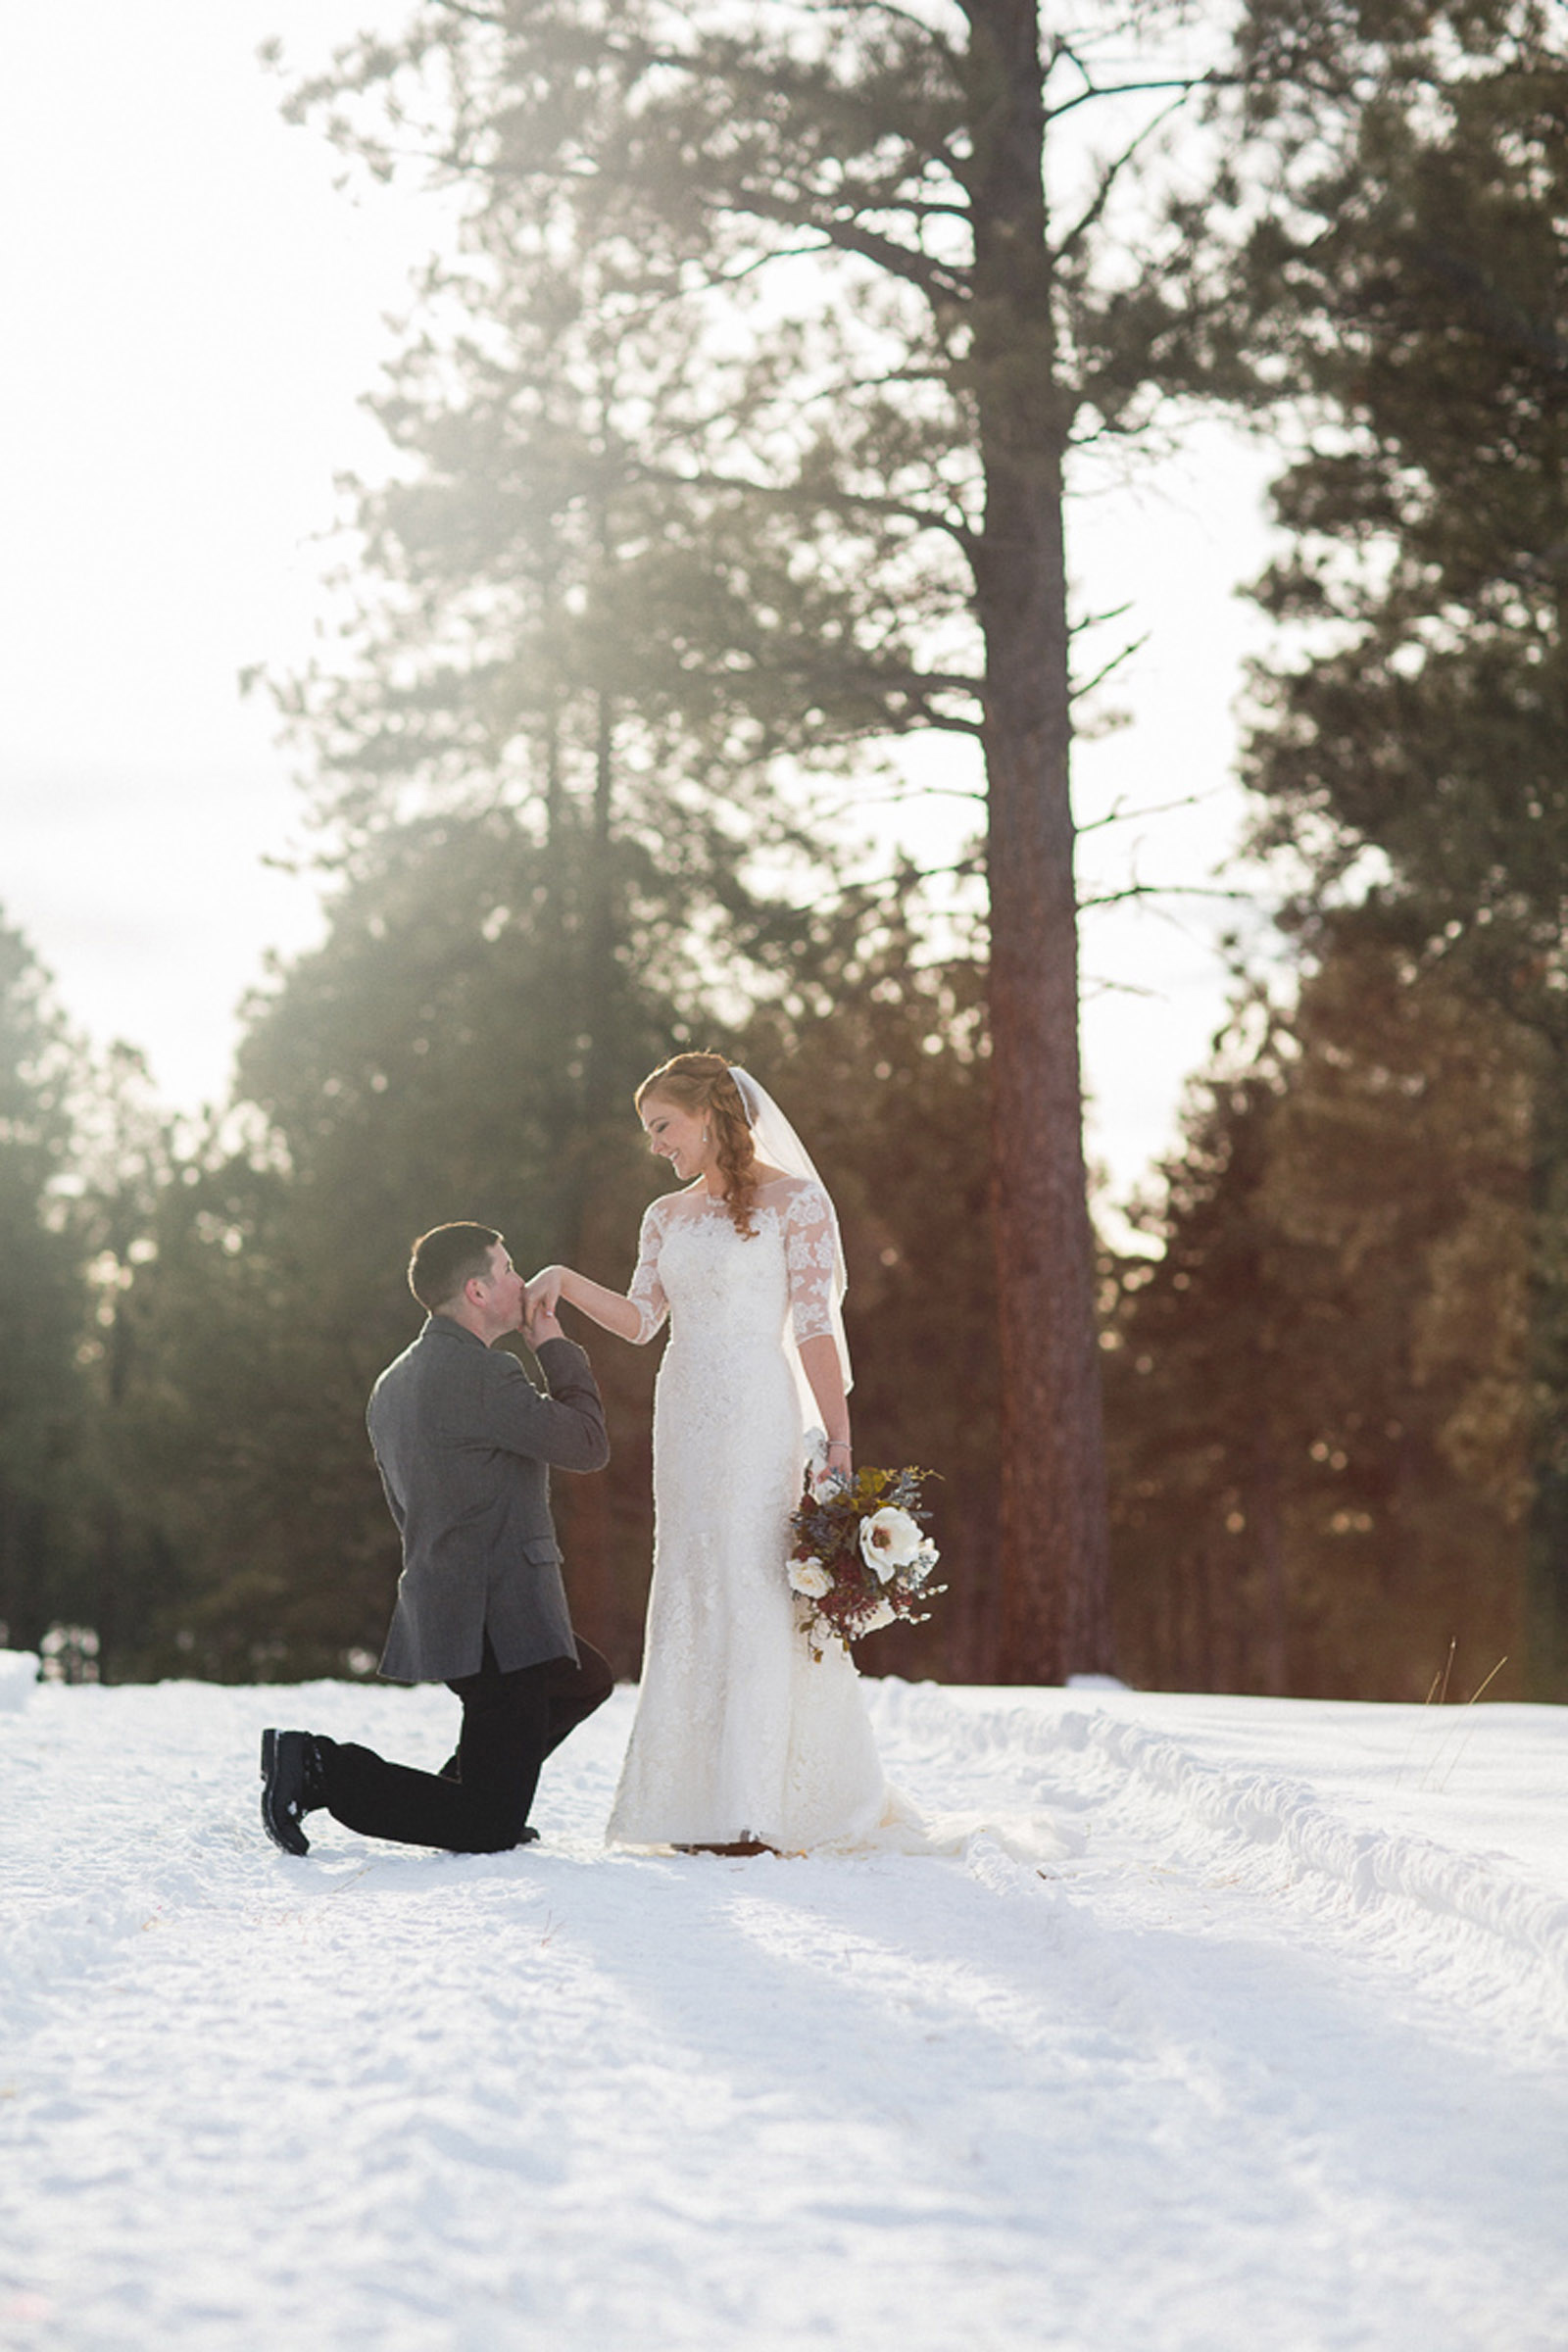 148-wedding-photographer-captures-newlyweds-in-snow-during-a-winter-snow-wedding-in-the-mountains-in-colorado